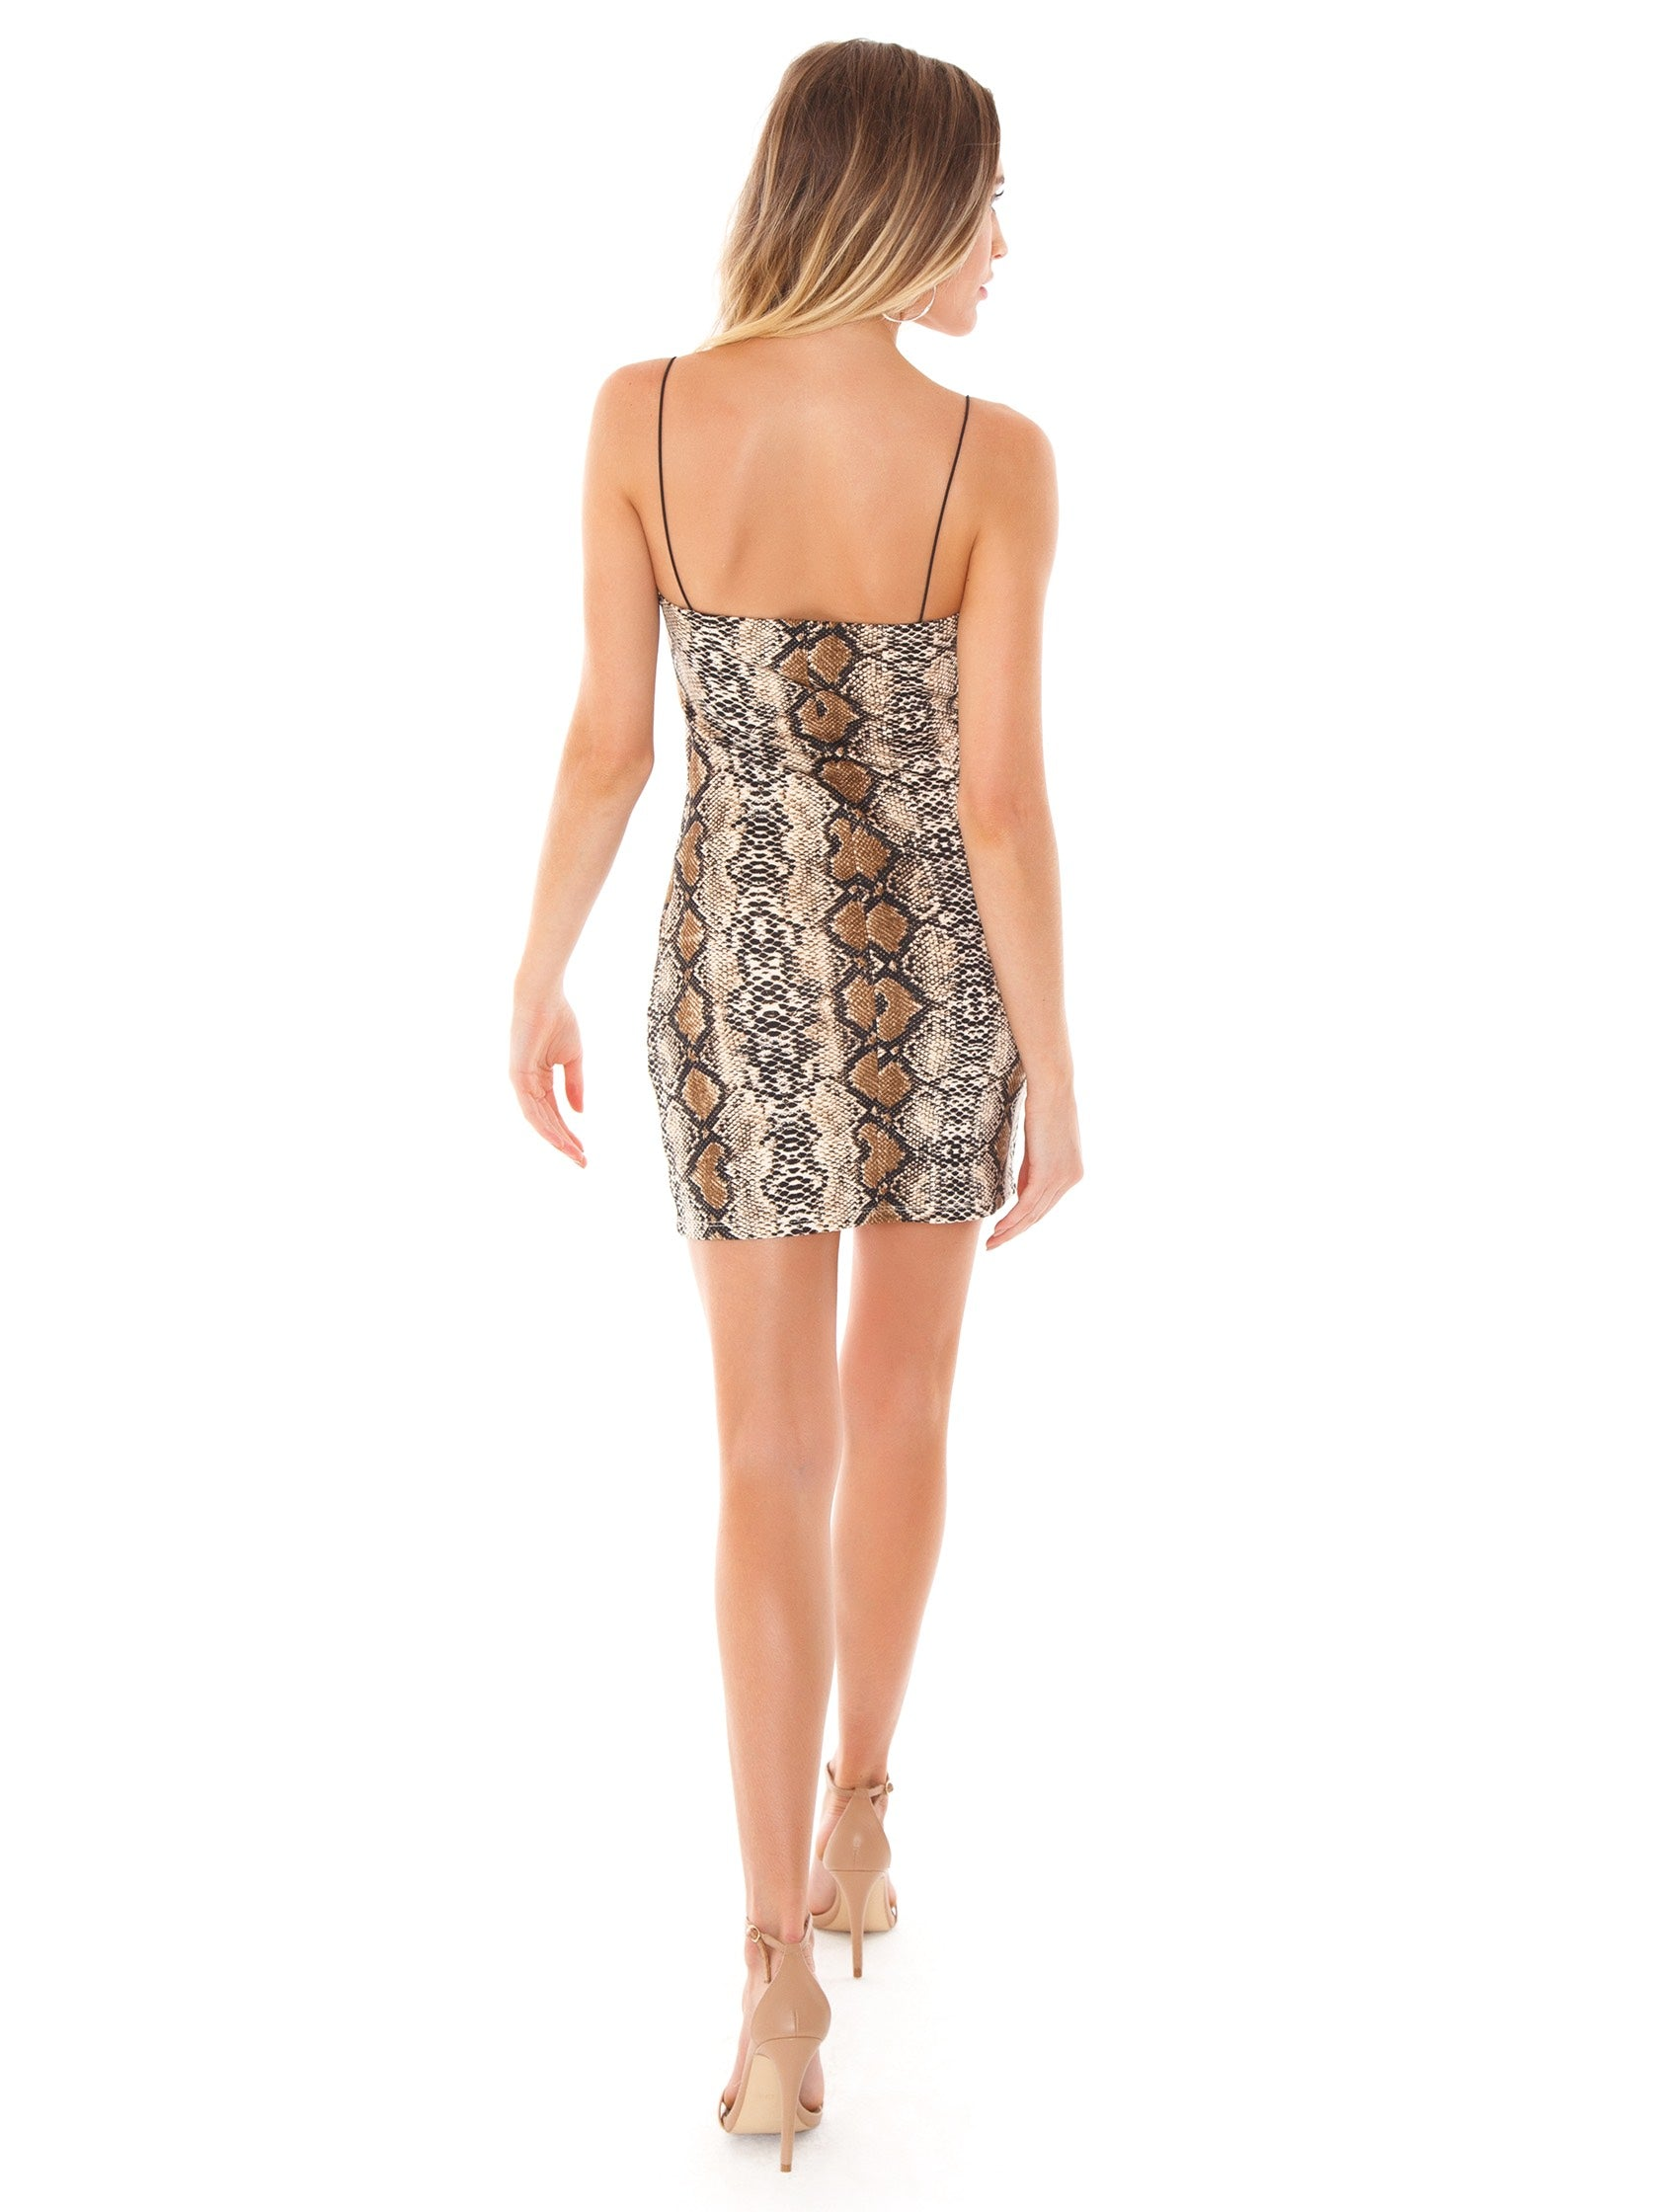 Women wearing a dress rental from FashionPass called Snakeskin Mini Dress